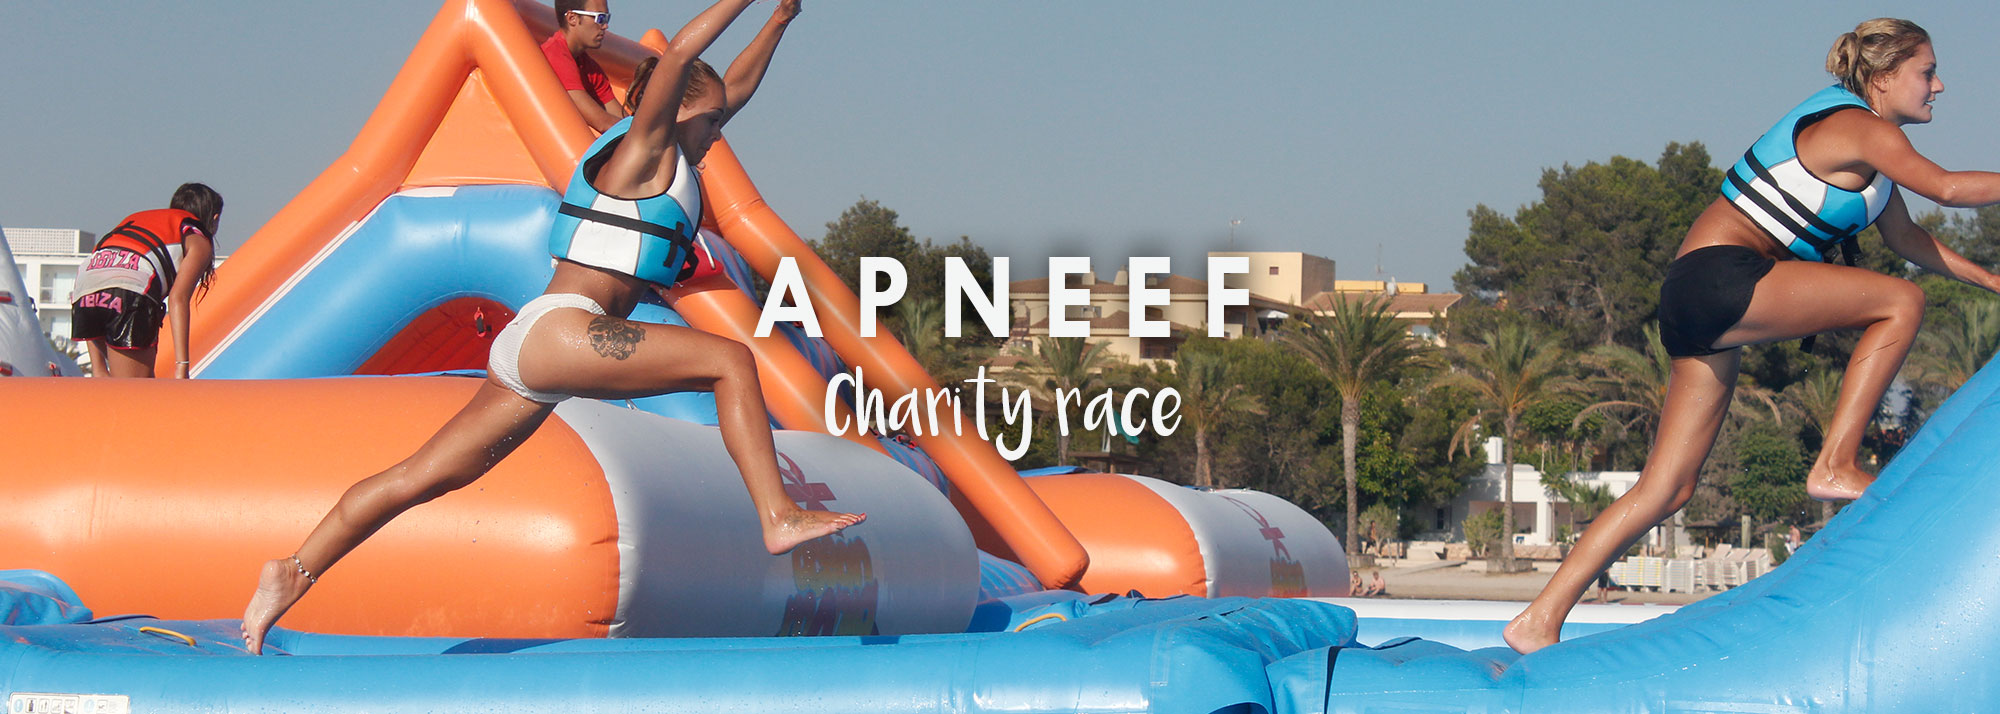 APNEEF Charity Race!